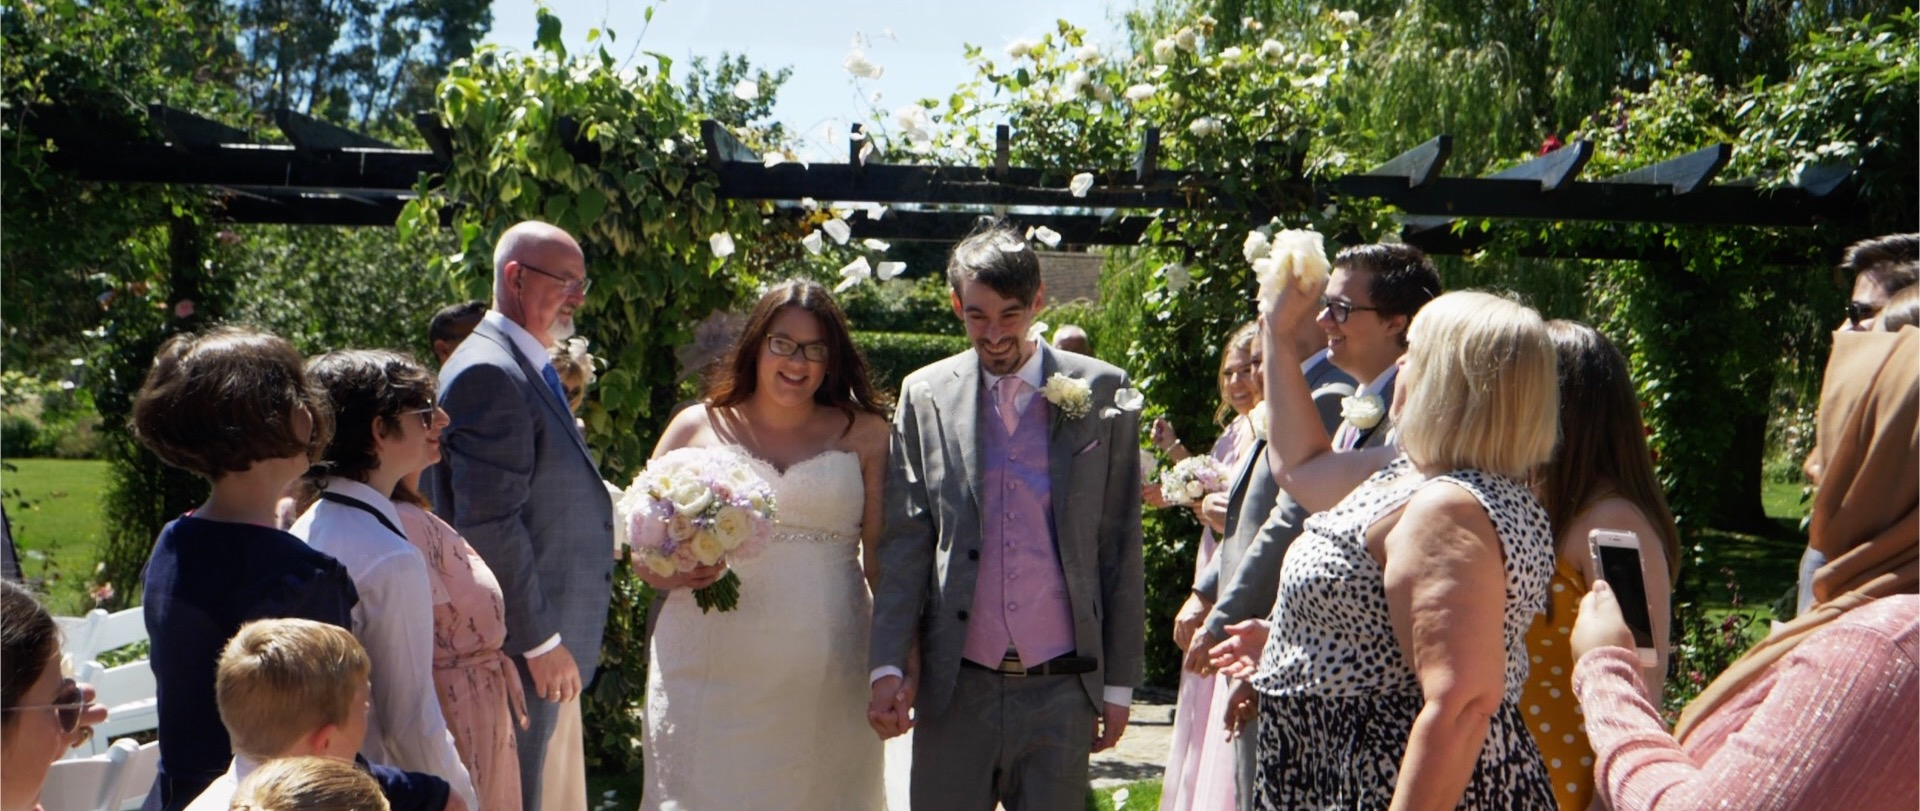 Confetti at High House Essex Weddings.jpg